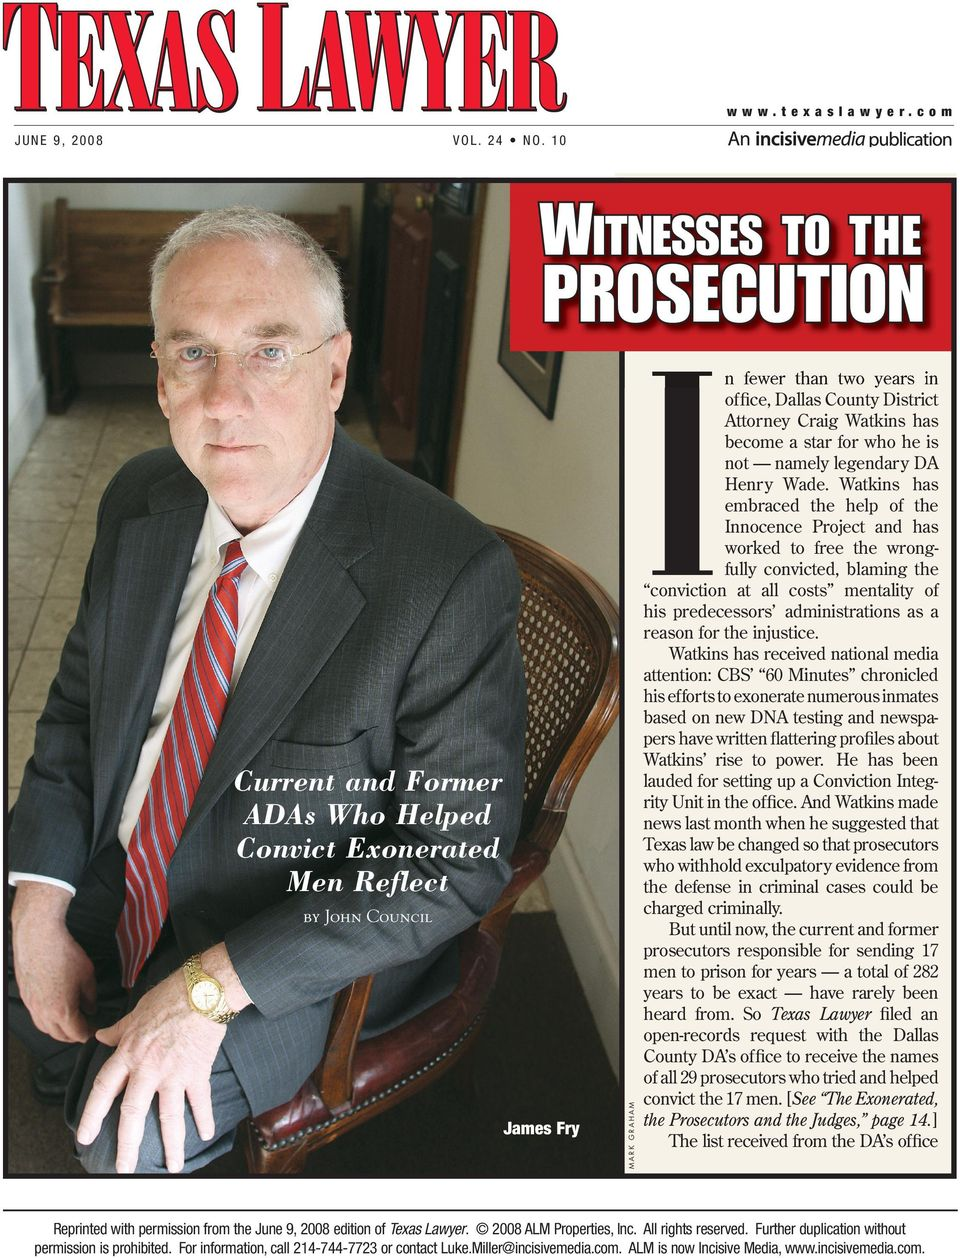 Attorney Craig Watkins has become a star for who he is not namely legendary DA Henry Wade.